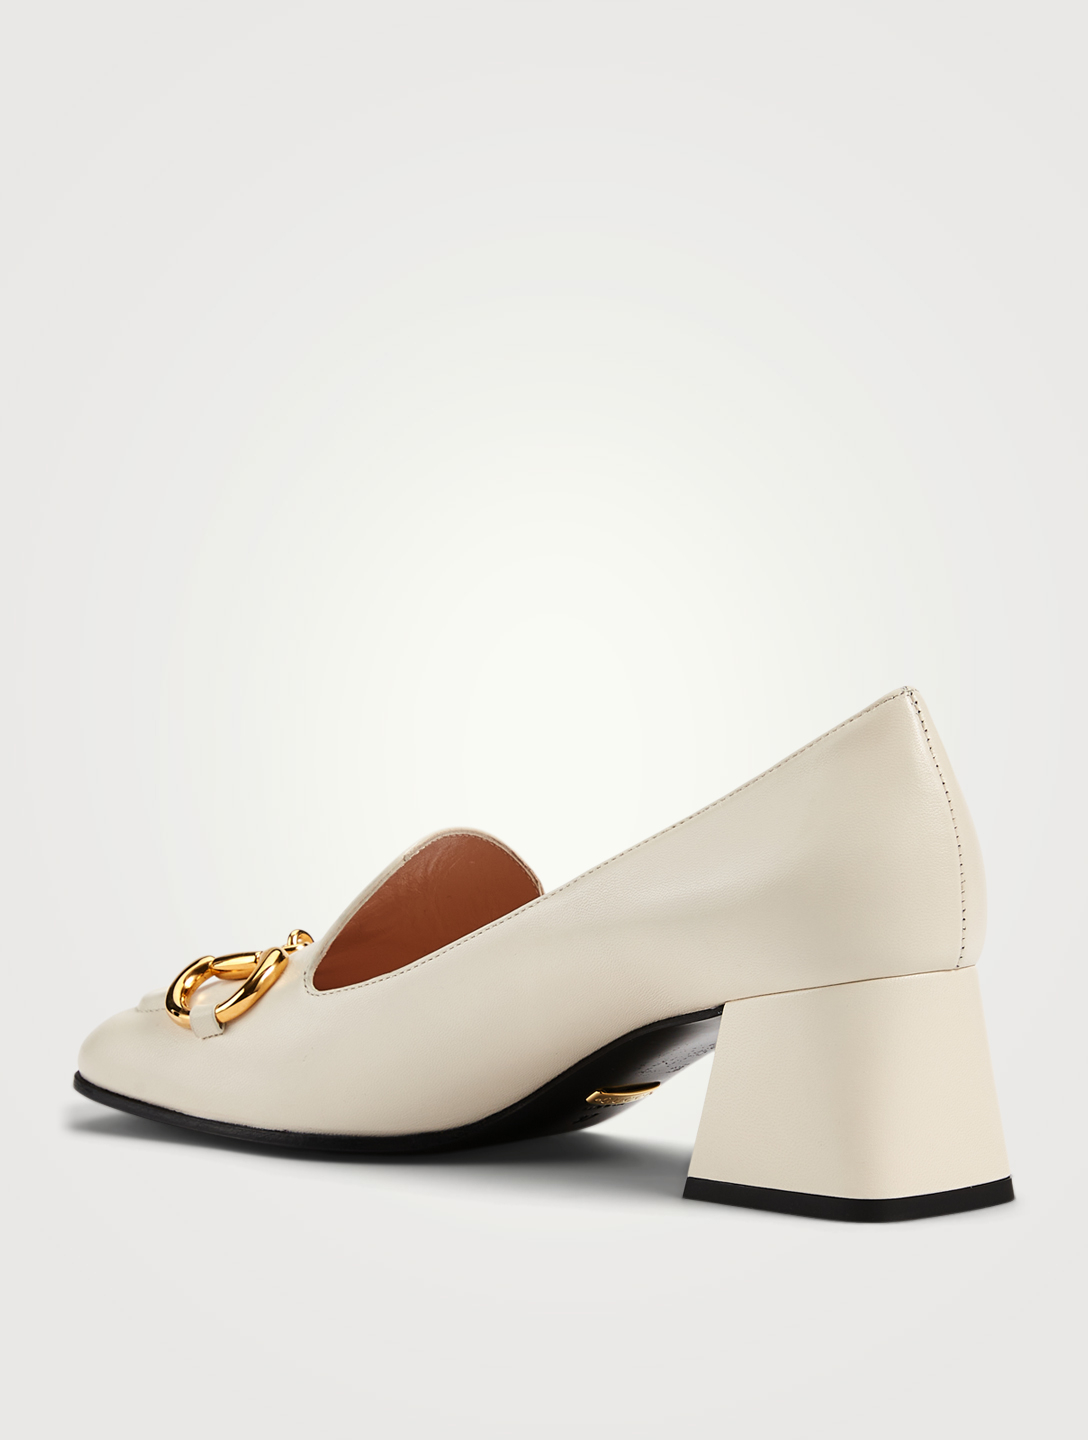 GUCCI Leather Pumps With Horsebit Women's White